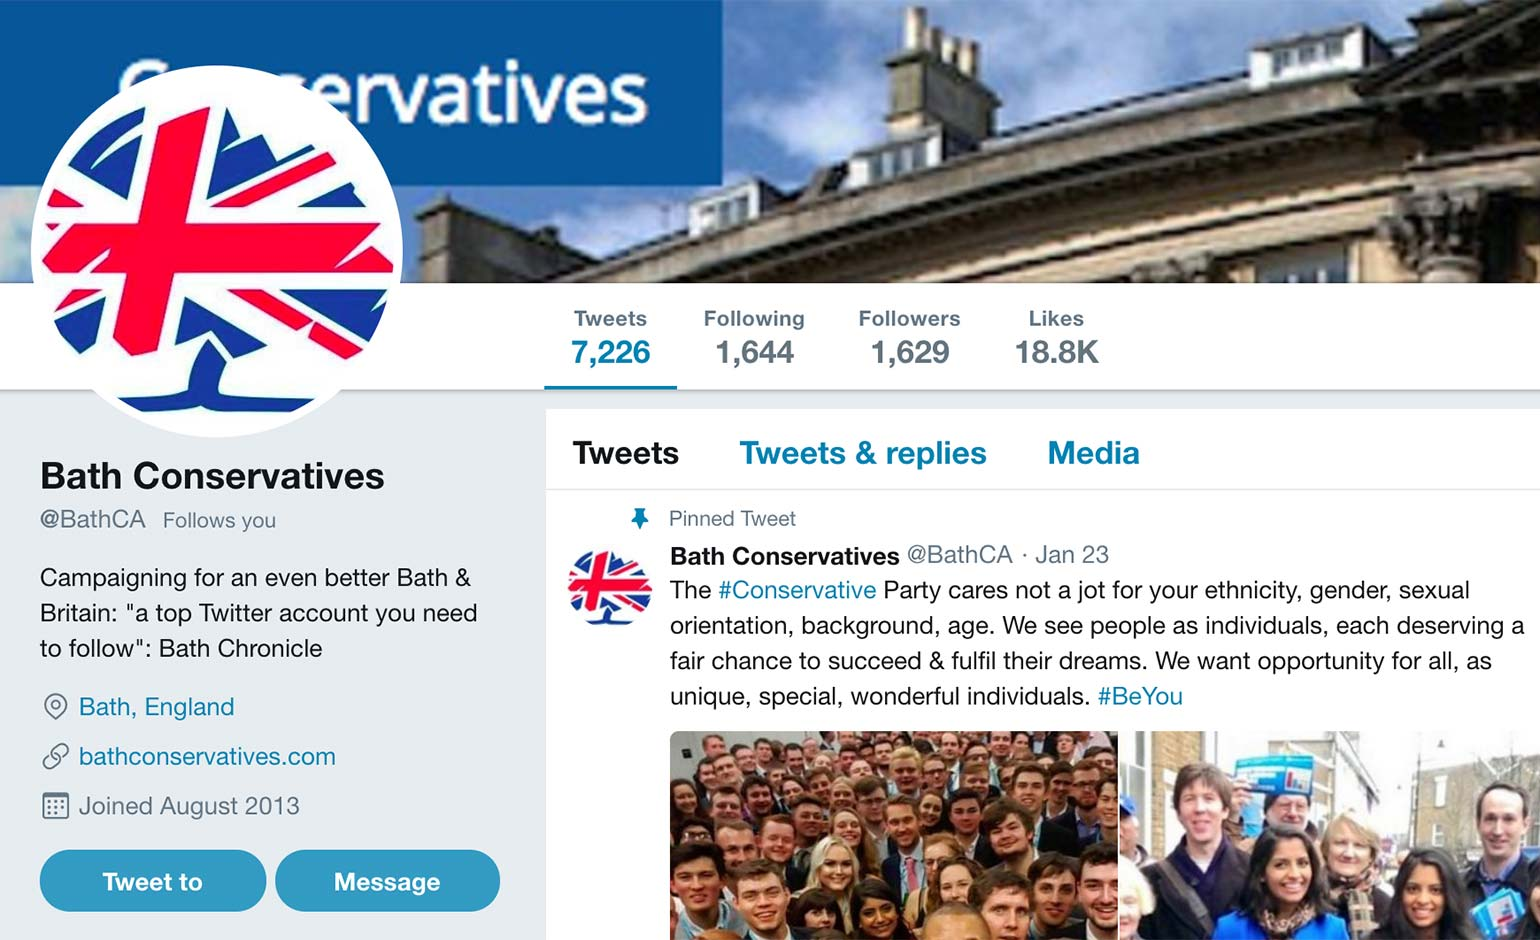 Bath Conservatives apologise for 'ill-judged' tweet on food poverty